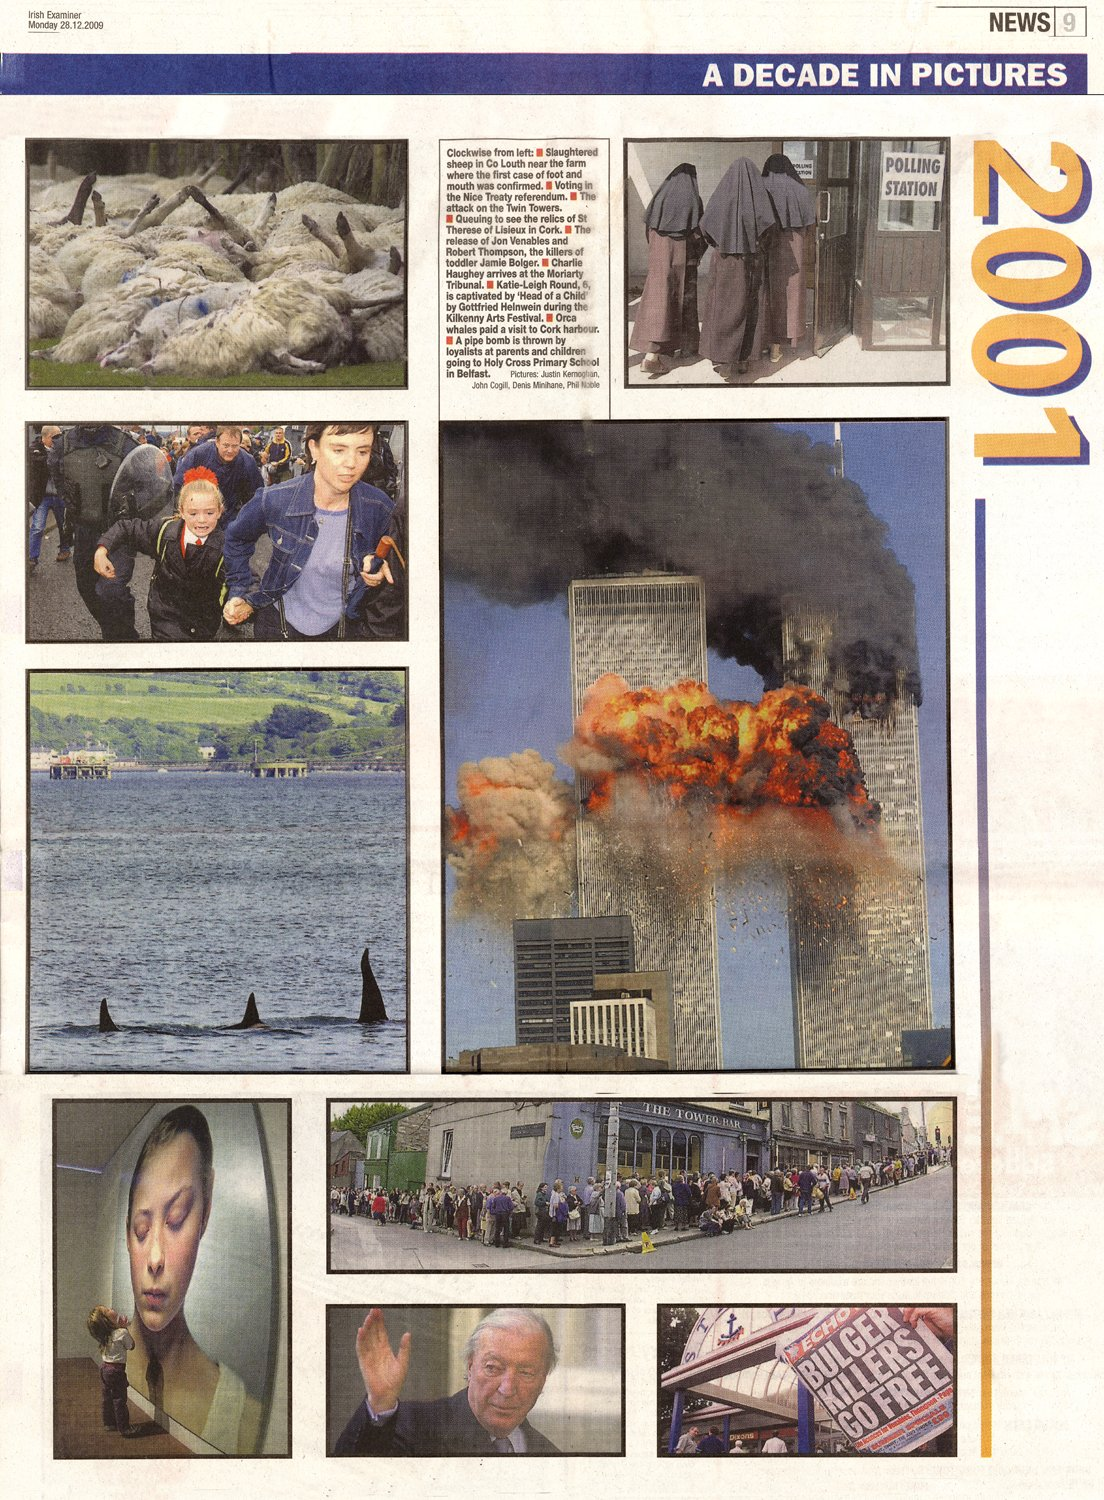 Irish Examiner - A Decade in Pictures